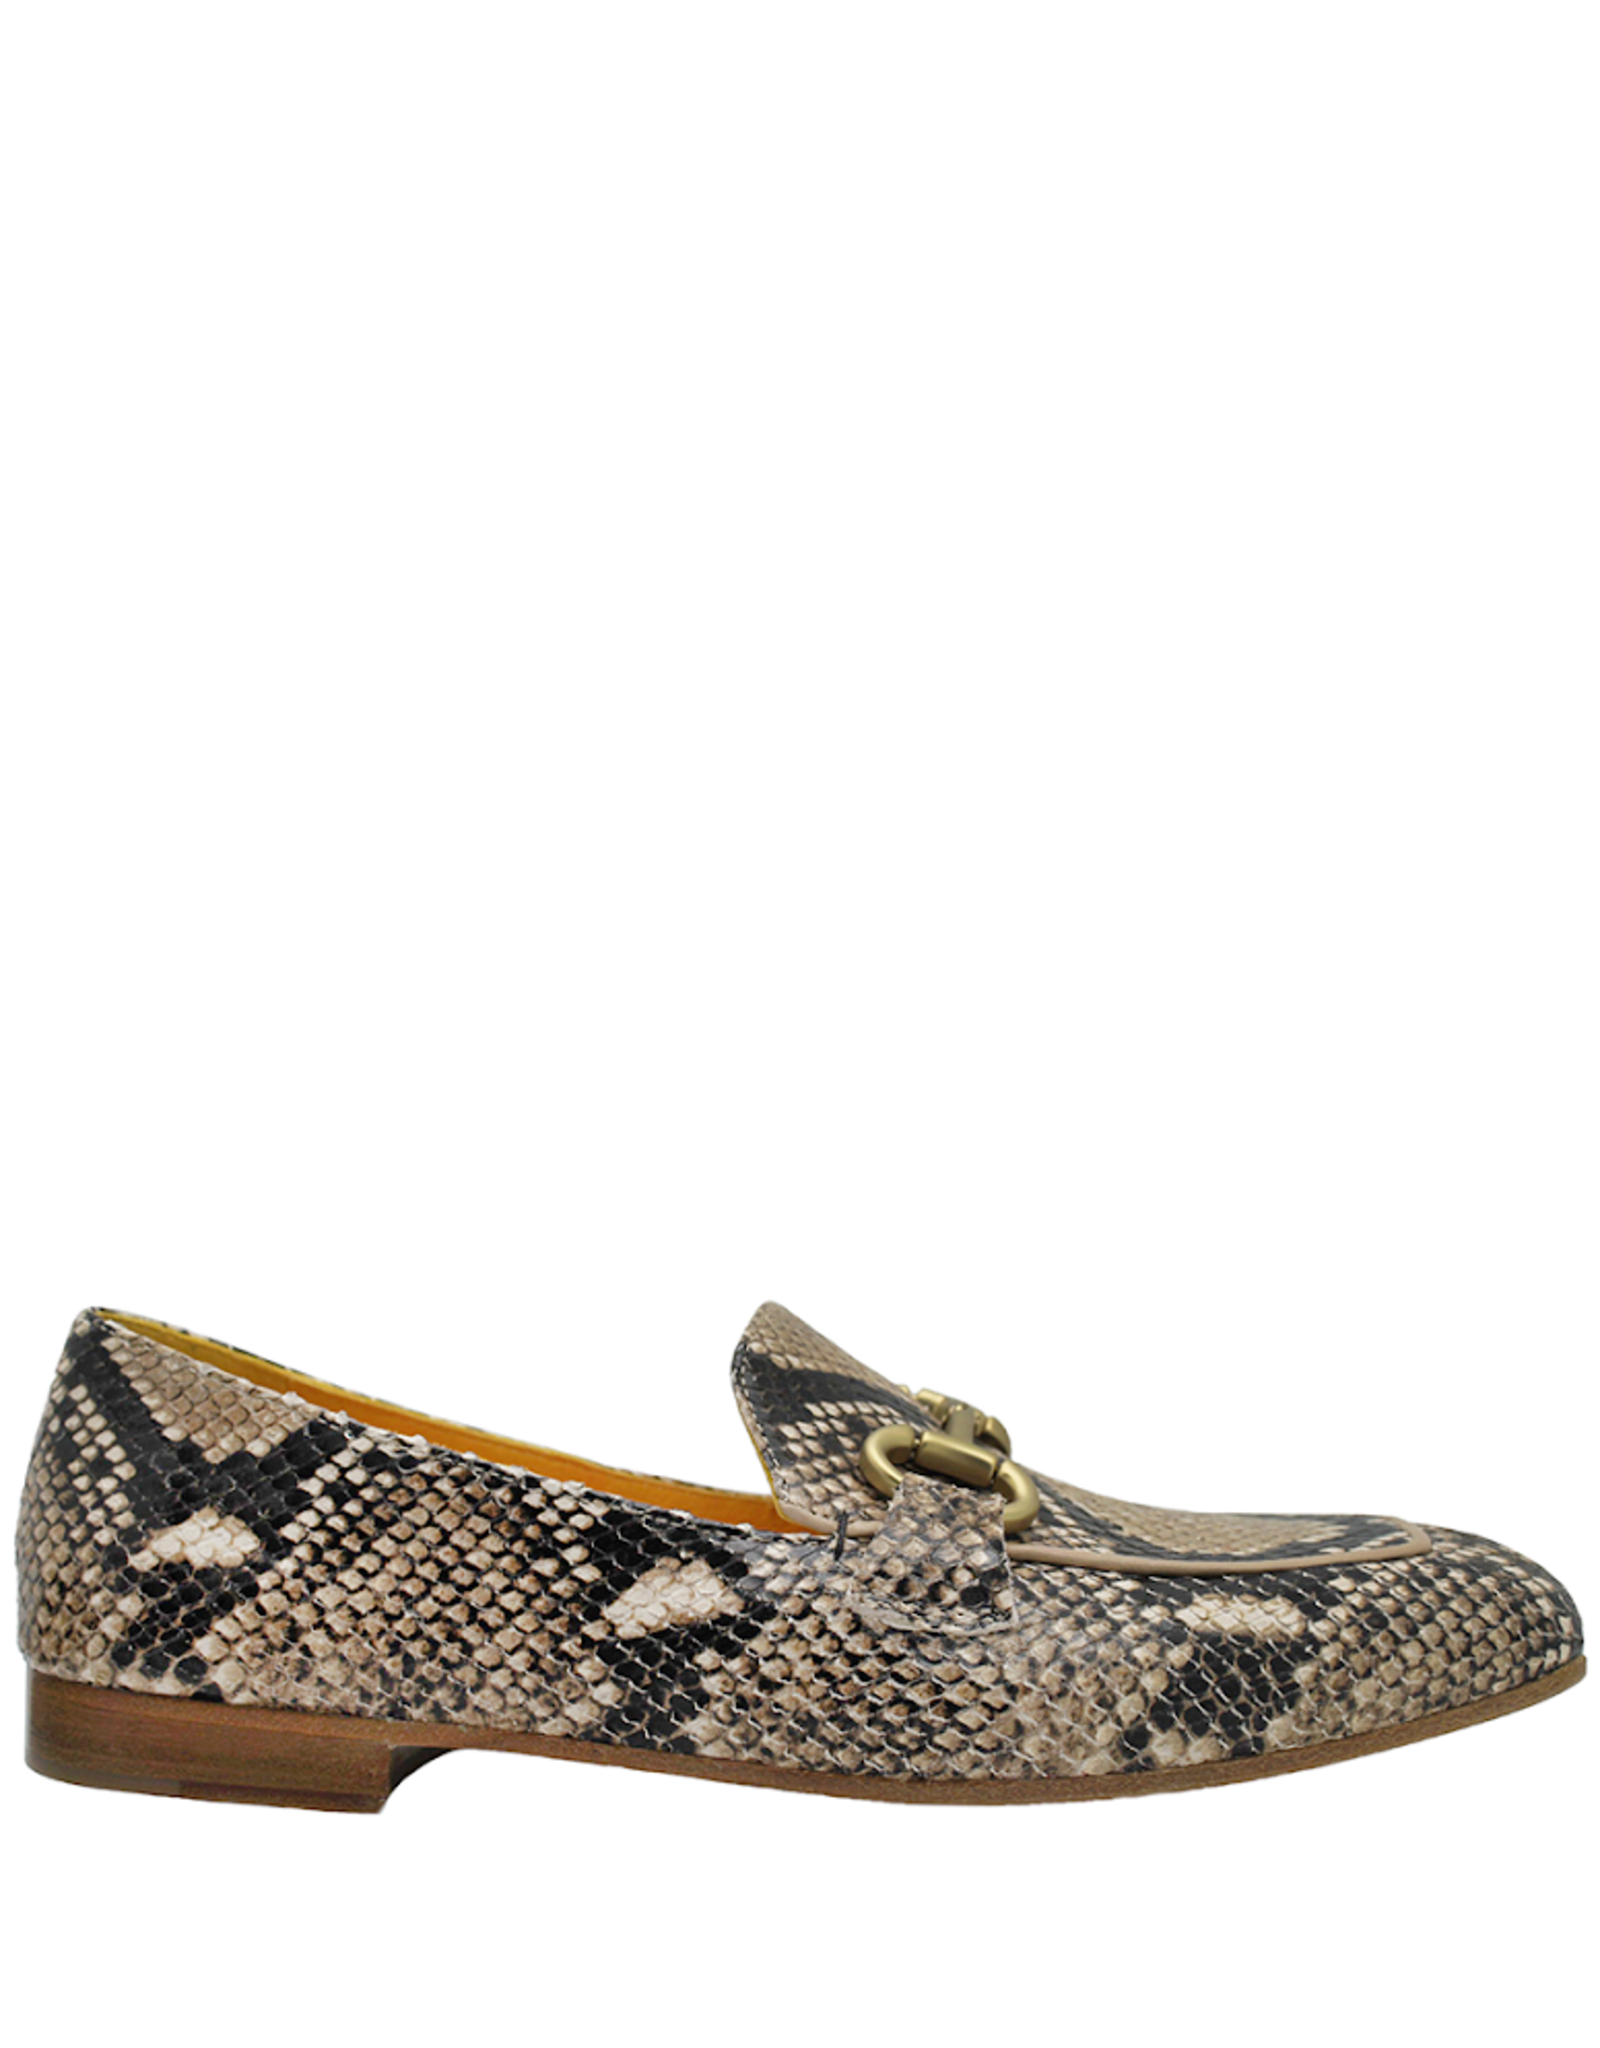 MaraBini MaraBini Tan Python Loafer With Bit 7414